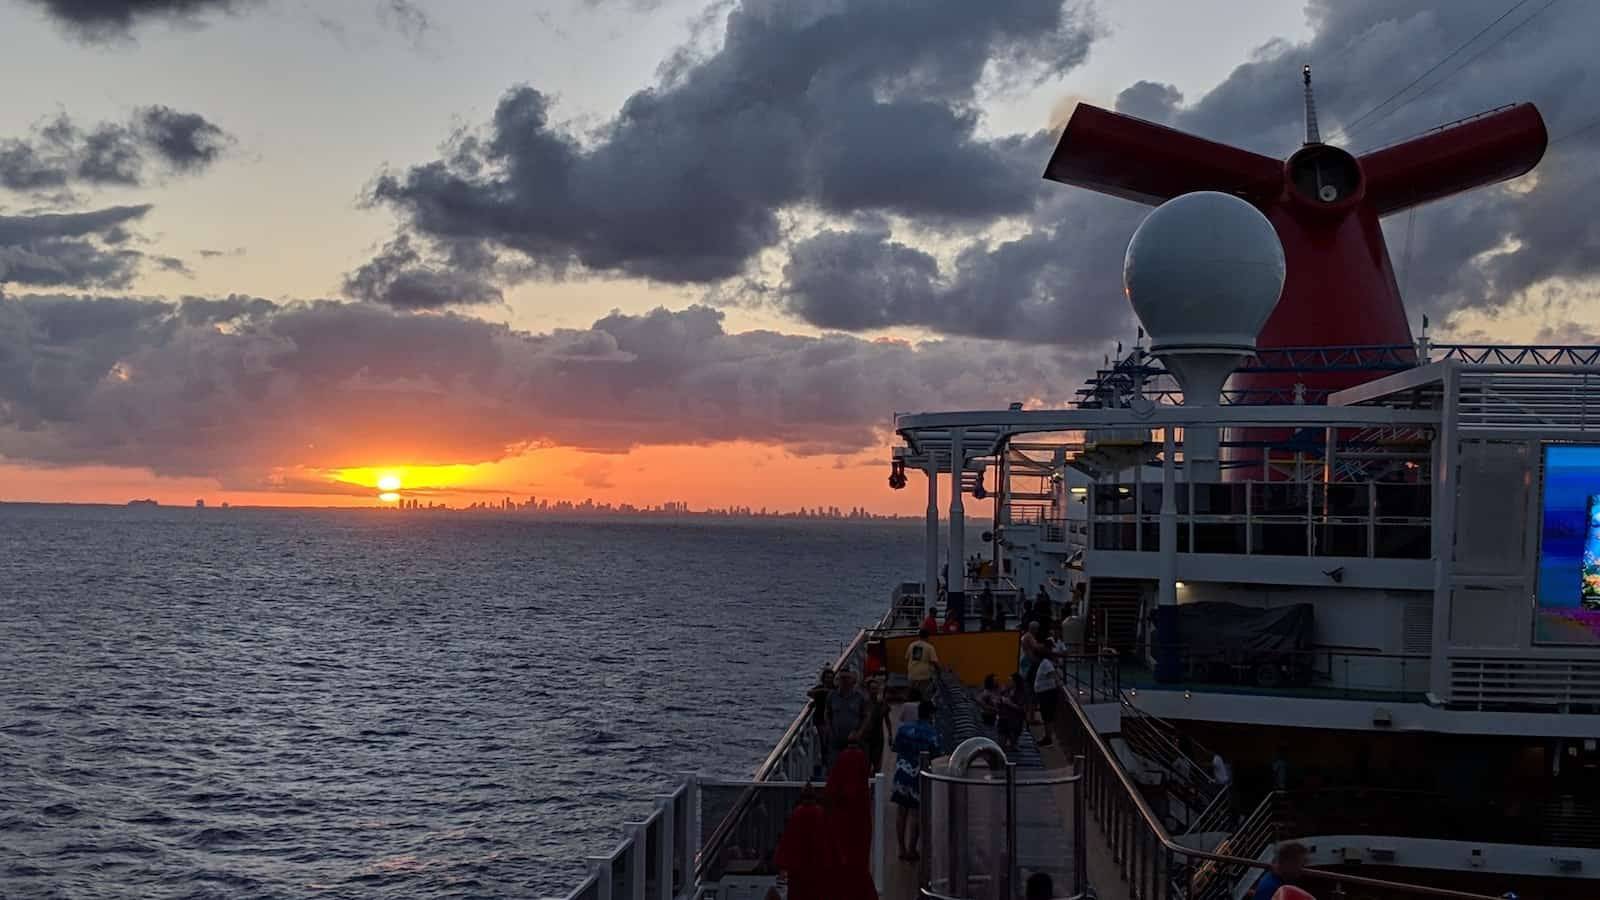 Leaving Miami at Sunset - Carnival Horizon - 8 Night Southern Caribbean3